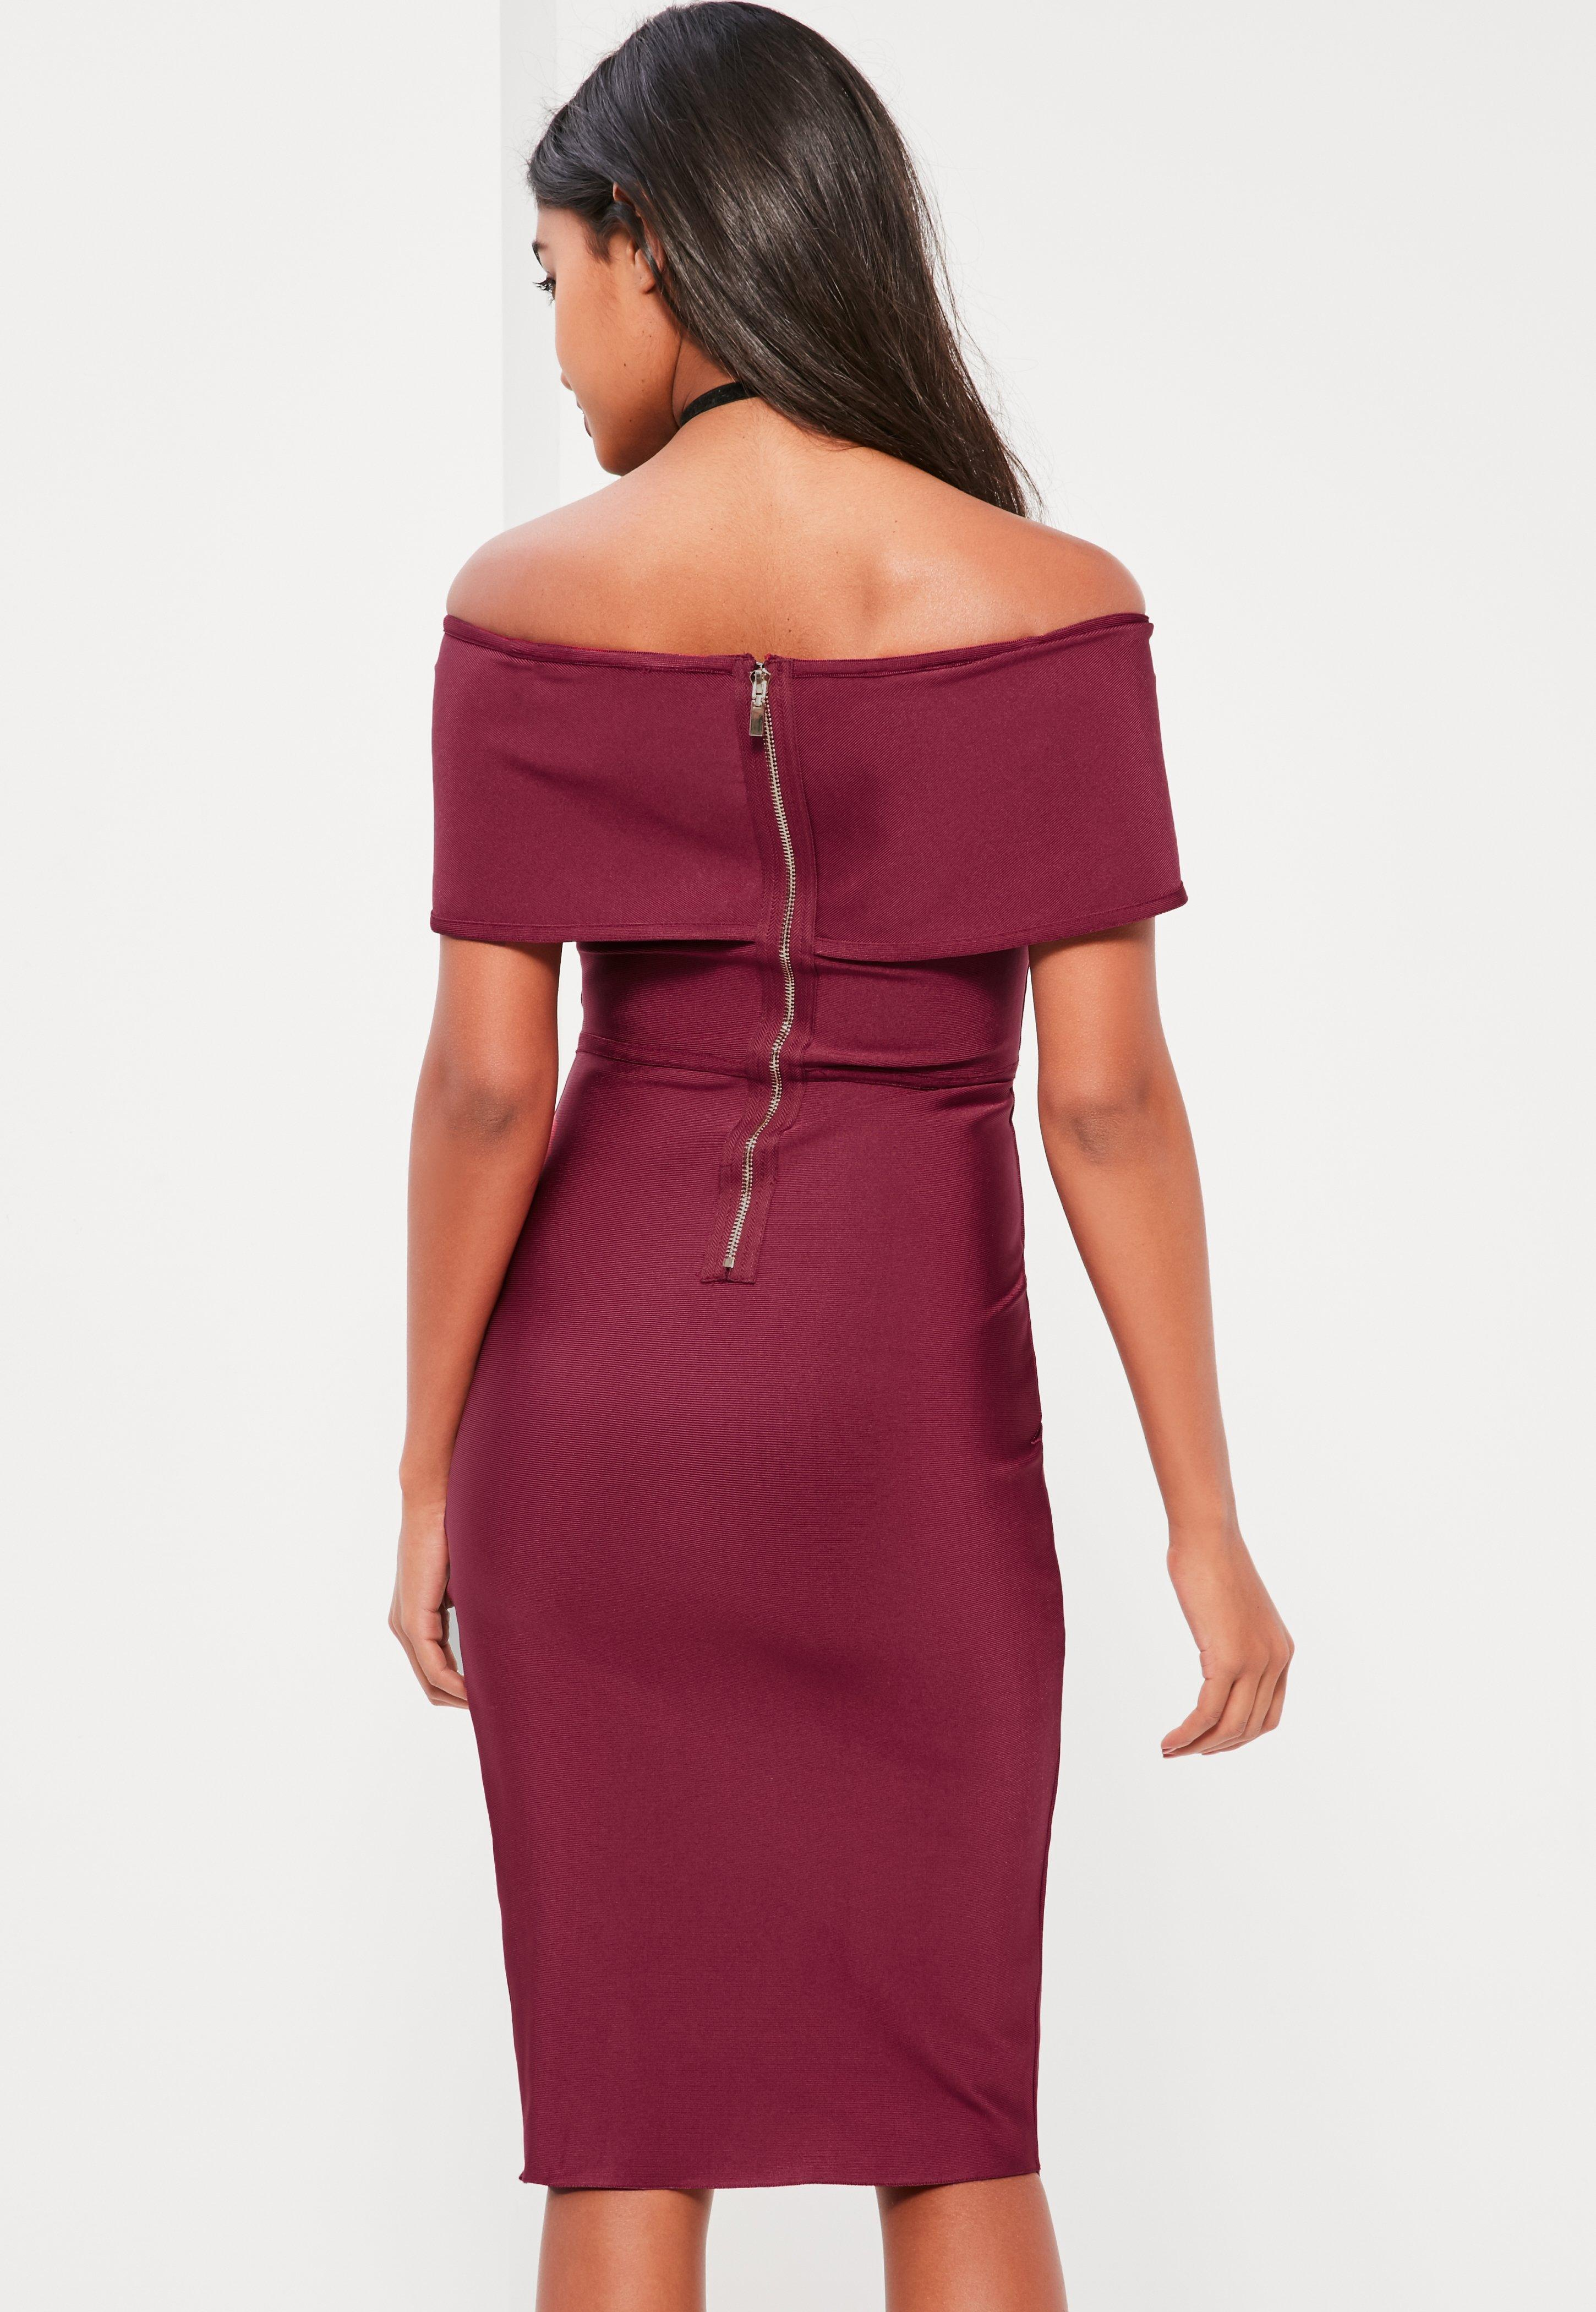 2917f1edce8a4 Lyst - Missguided Burgundy Bandage Bardot Midi Dress in Red